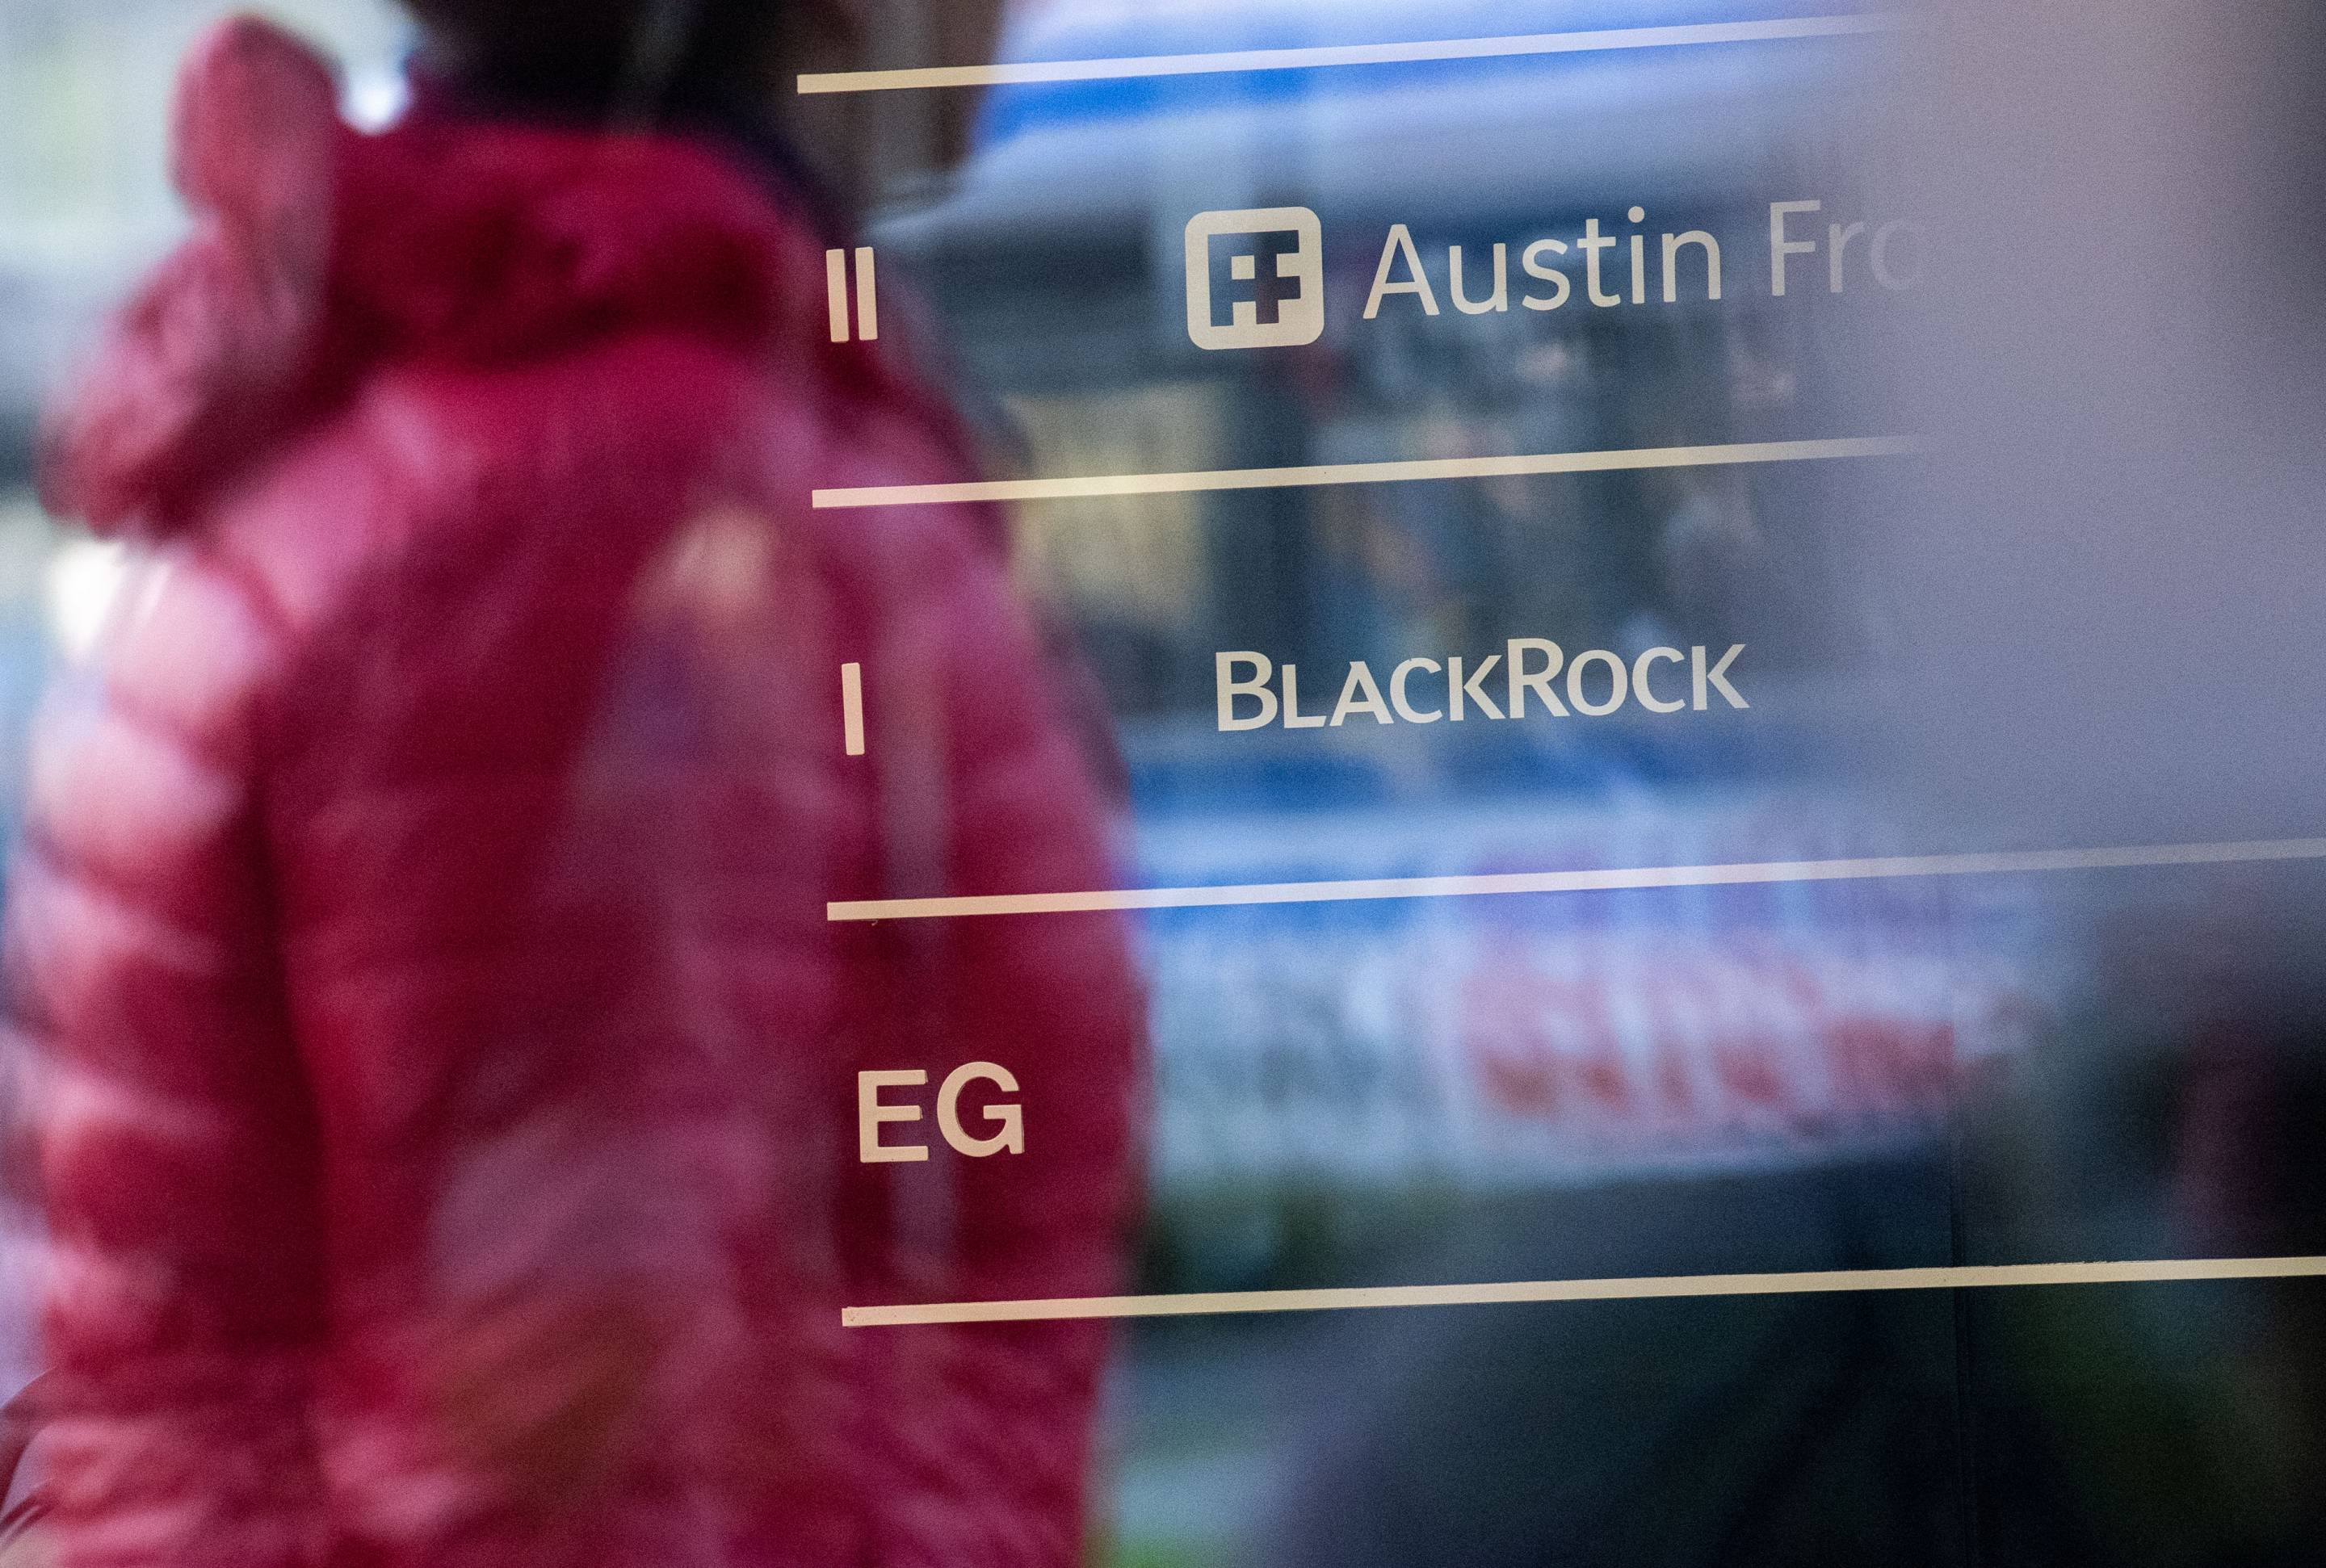 BlackRock, Capital Group, and Pimco Managers Warn of 2019